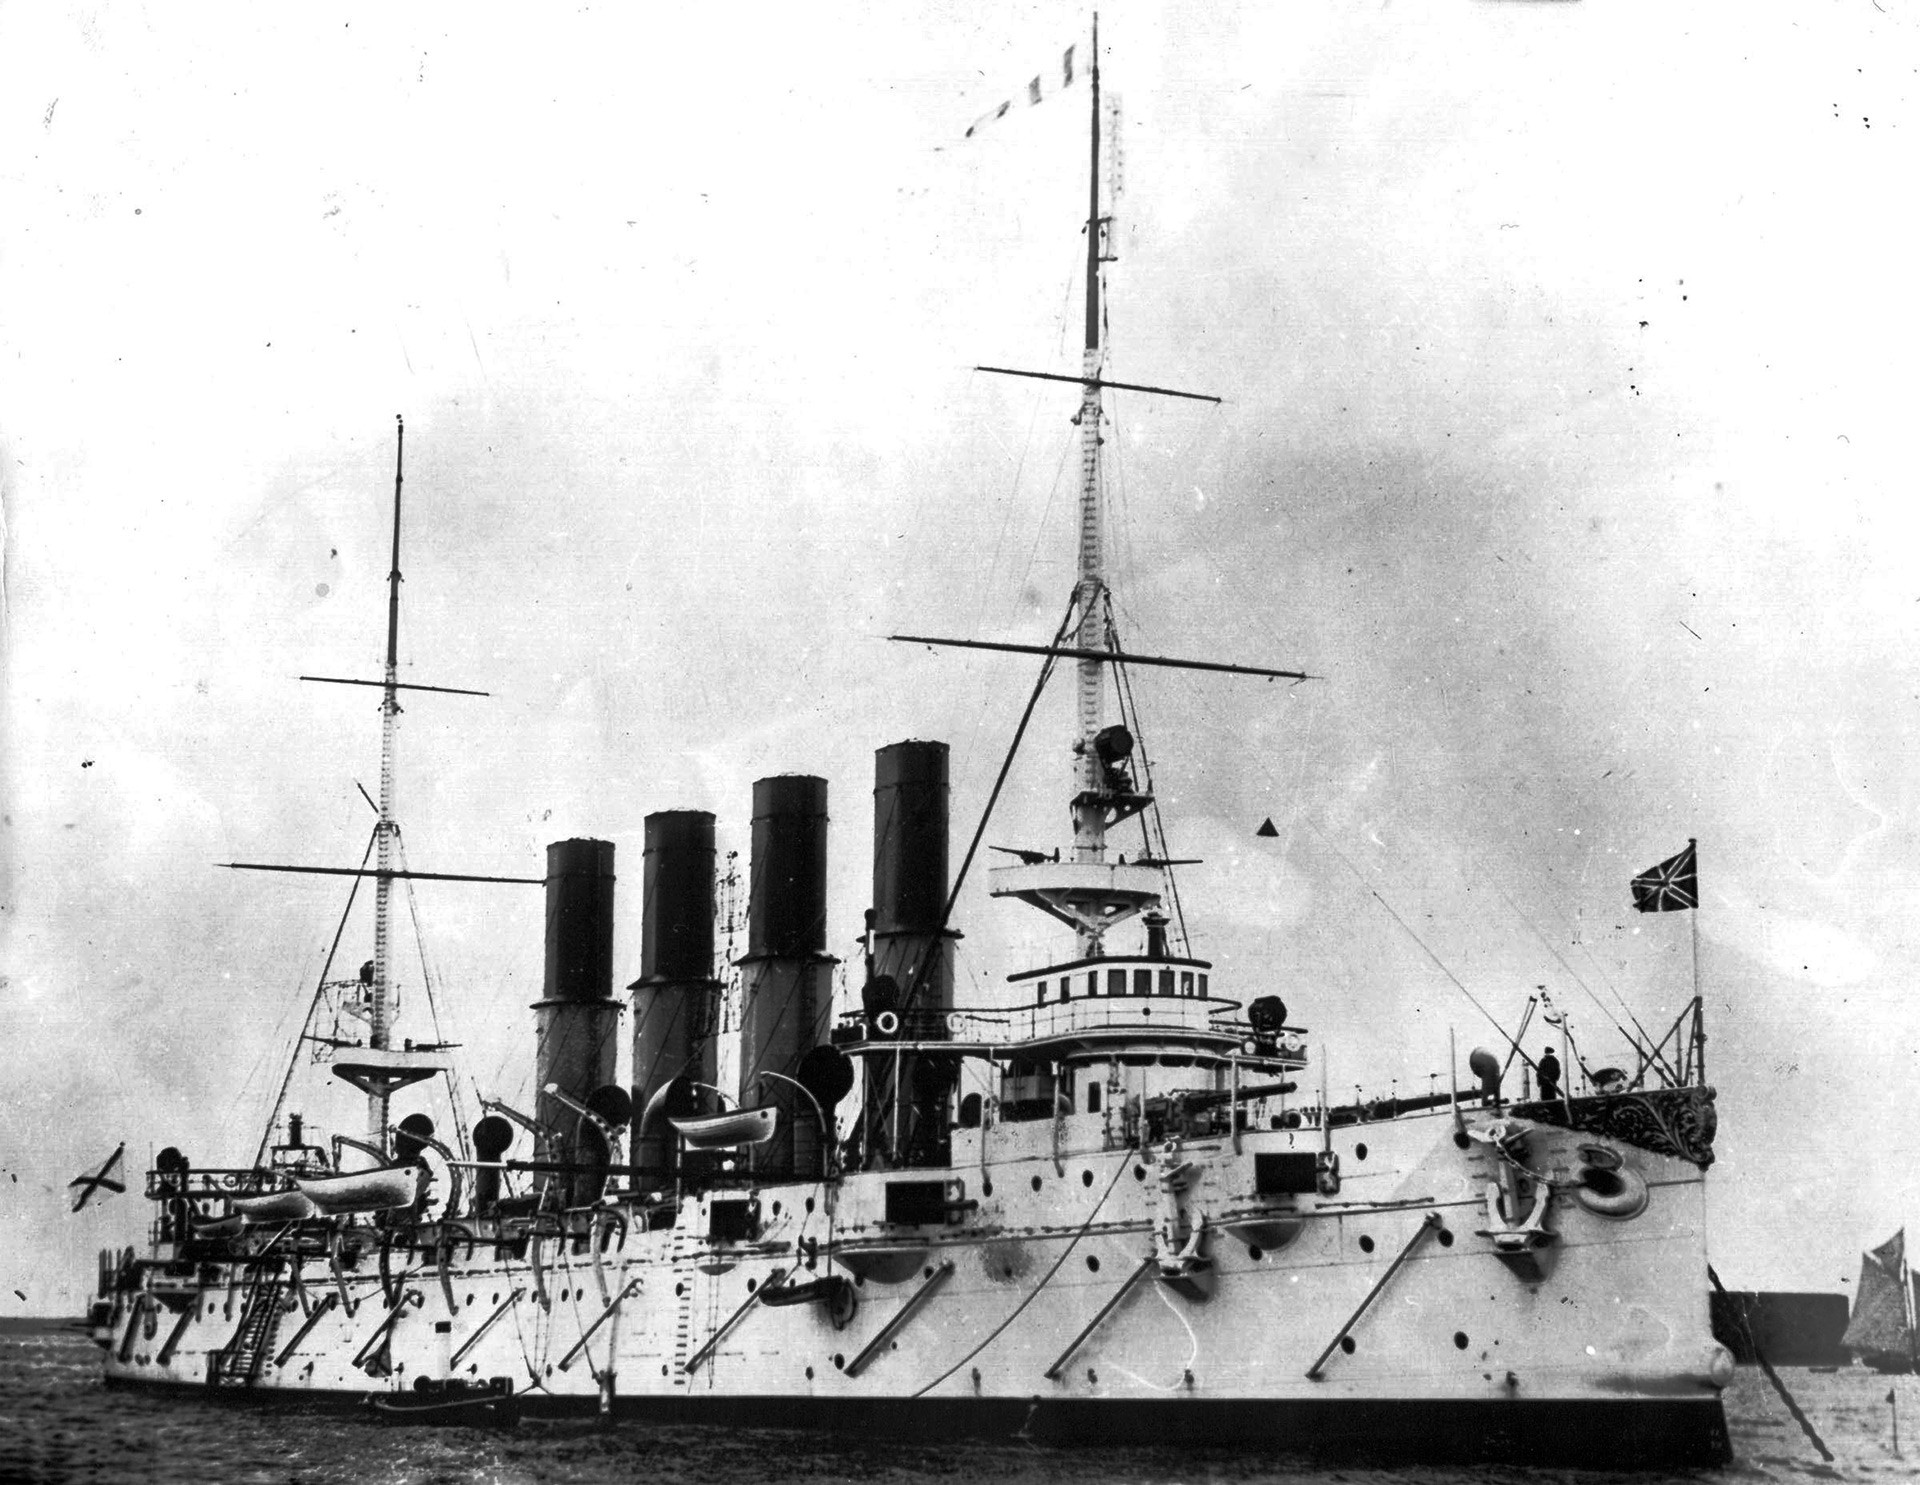 The Imperial Russian protected cruiser Varyag in Kronstadt.